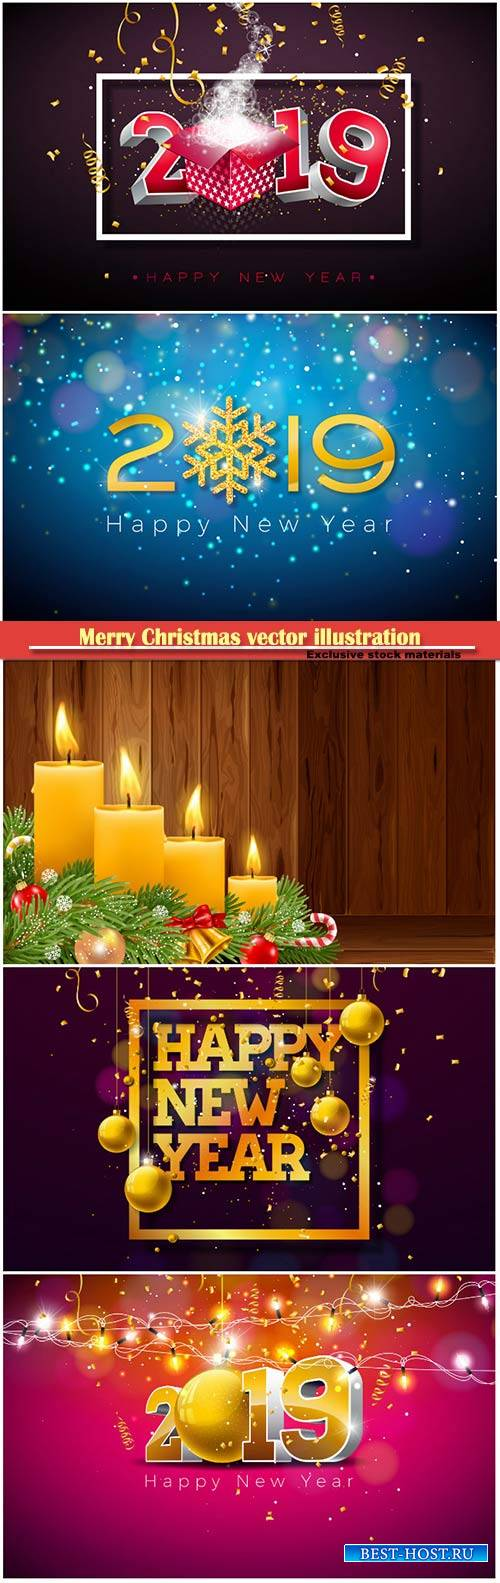 2019 Happy New Year illustration with 3d gold number